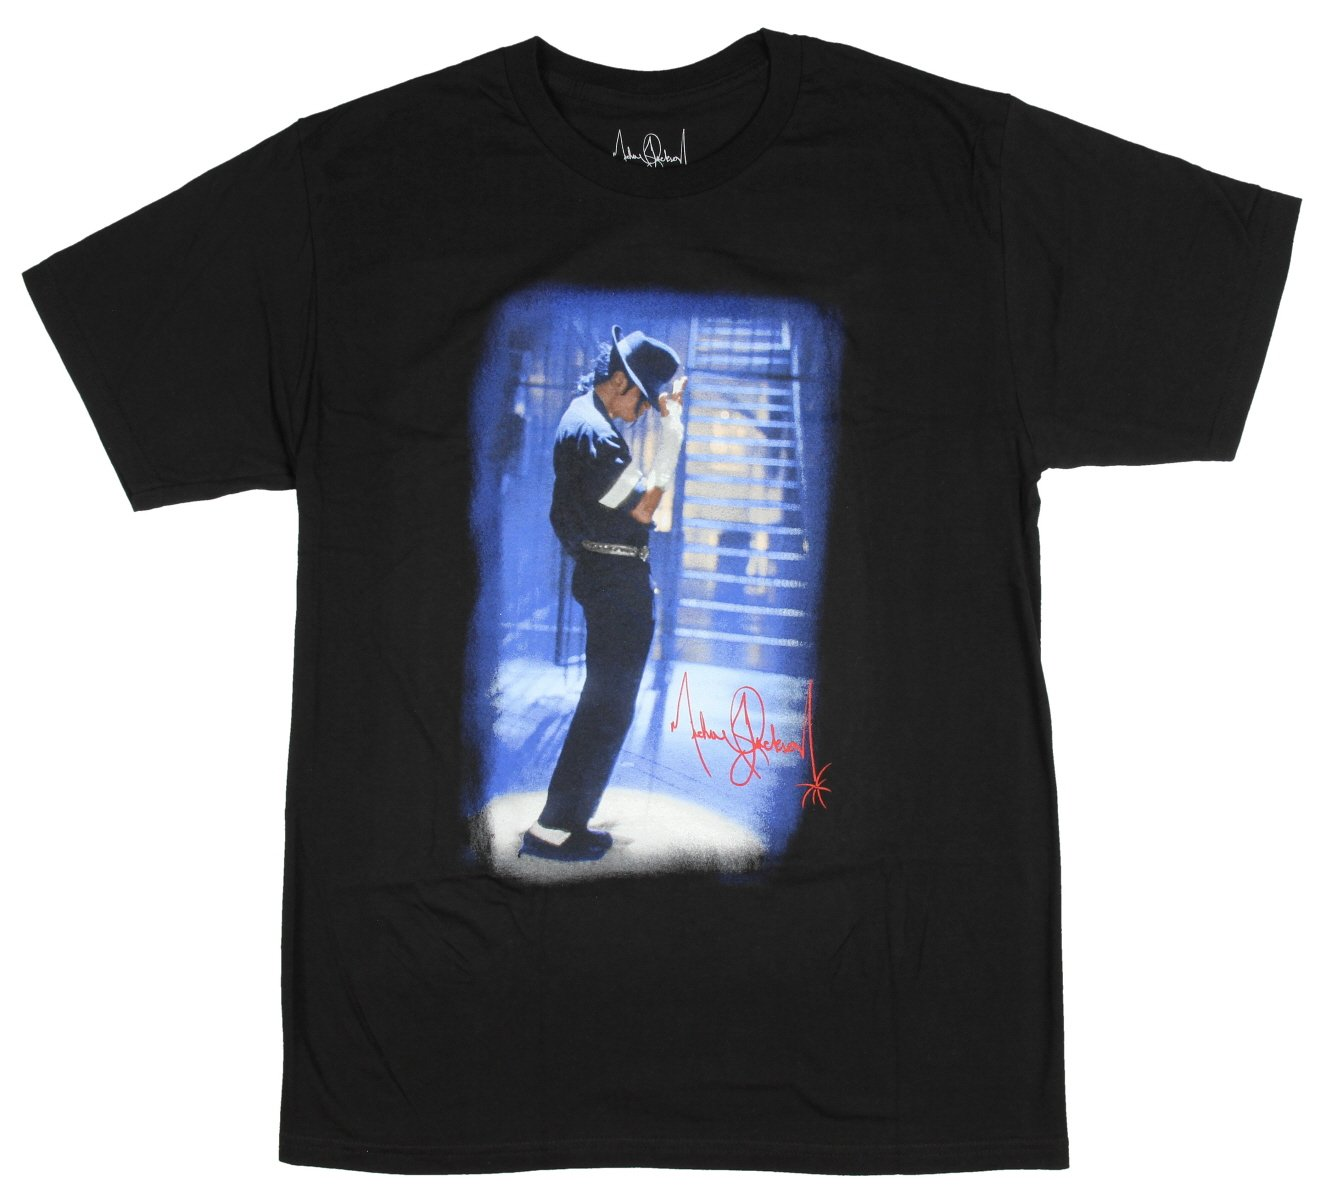 Michael Jackson T Shirt The King of Pop Men's Graphic Logo Black Tee Medium